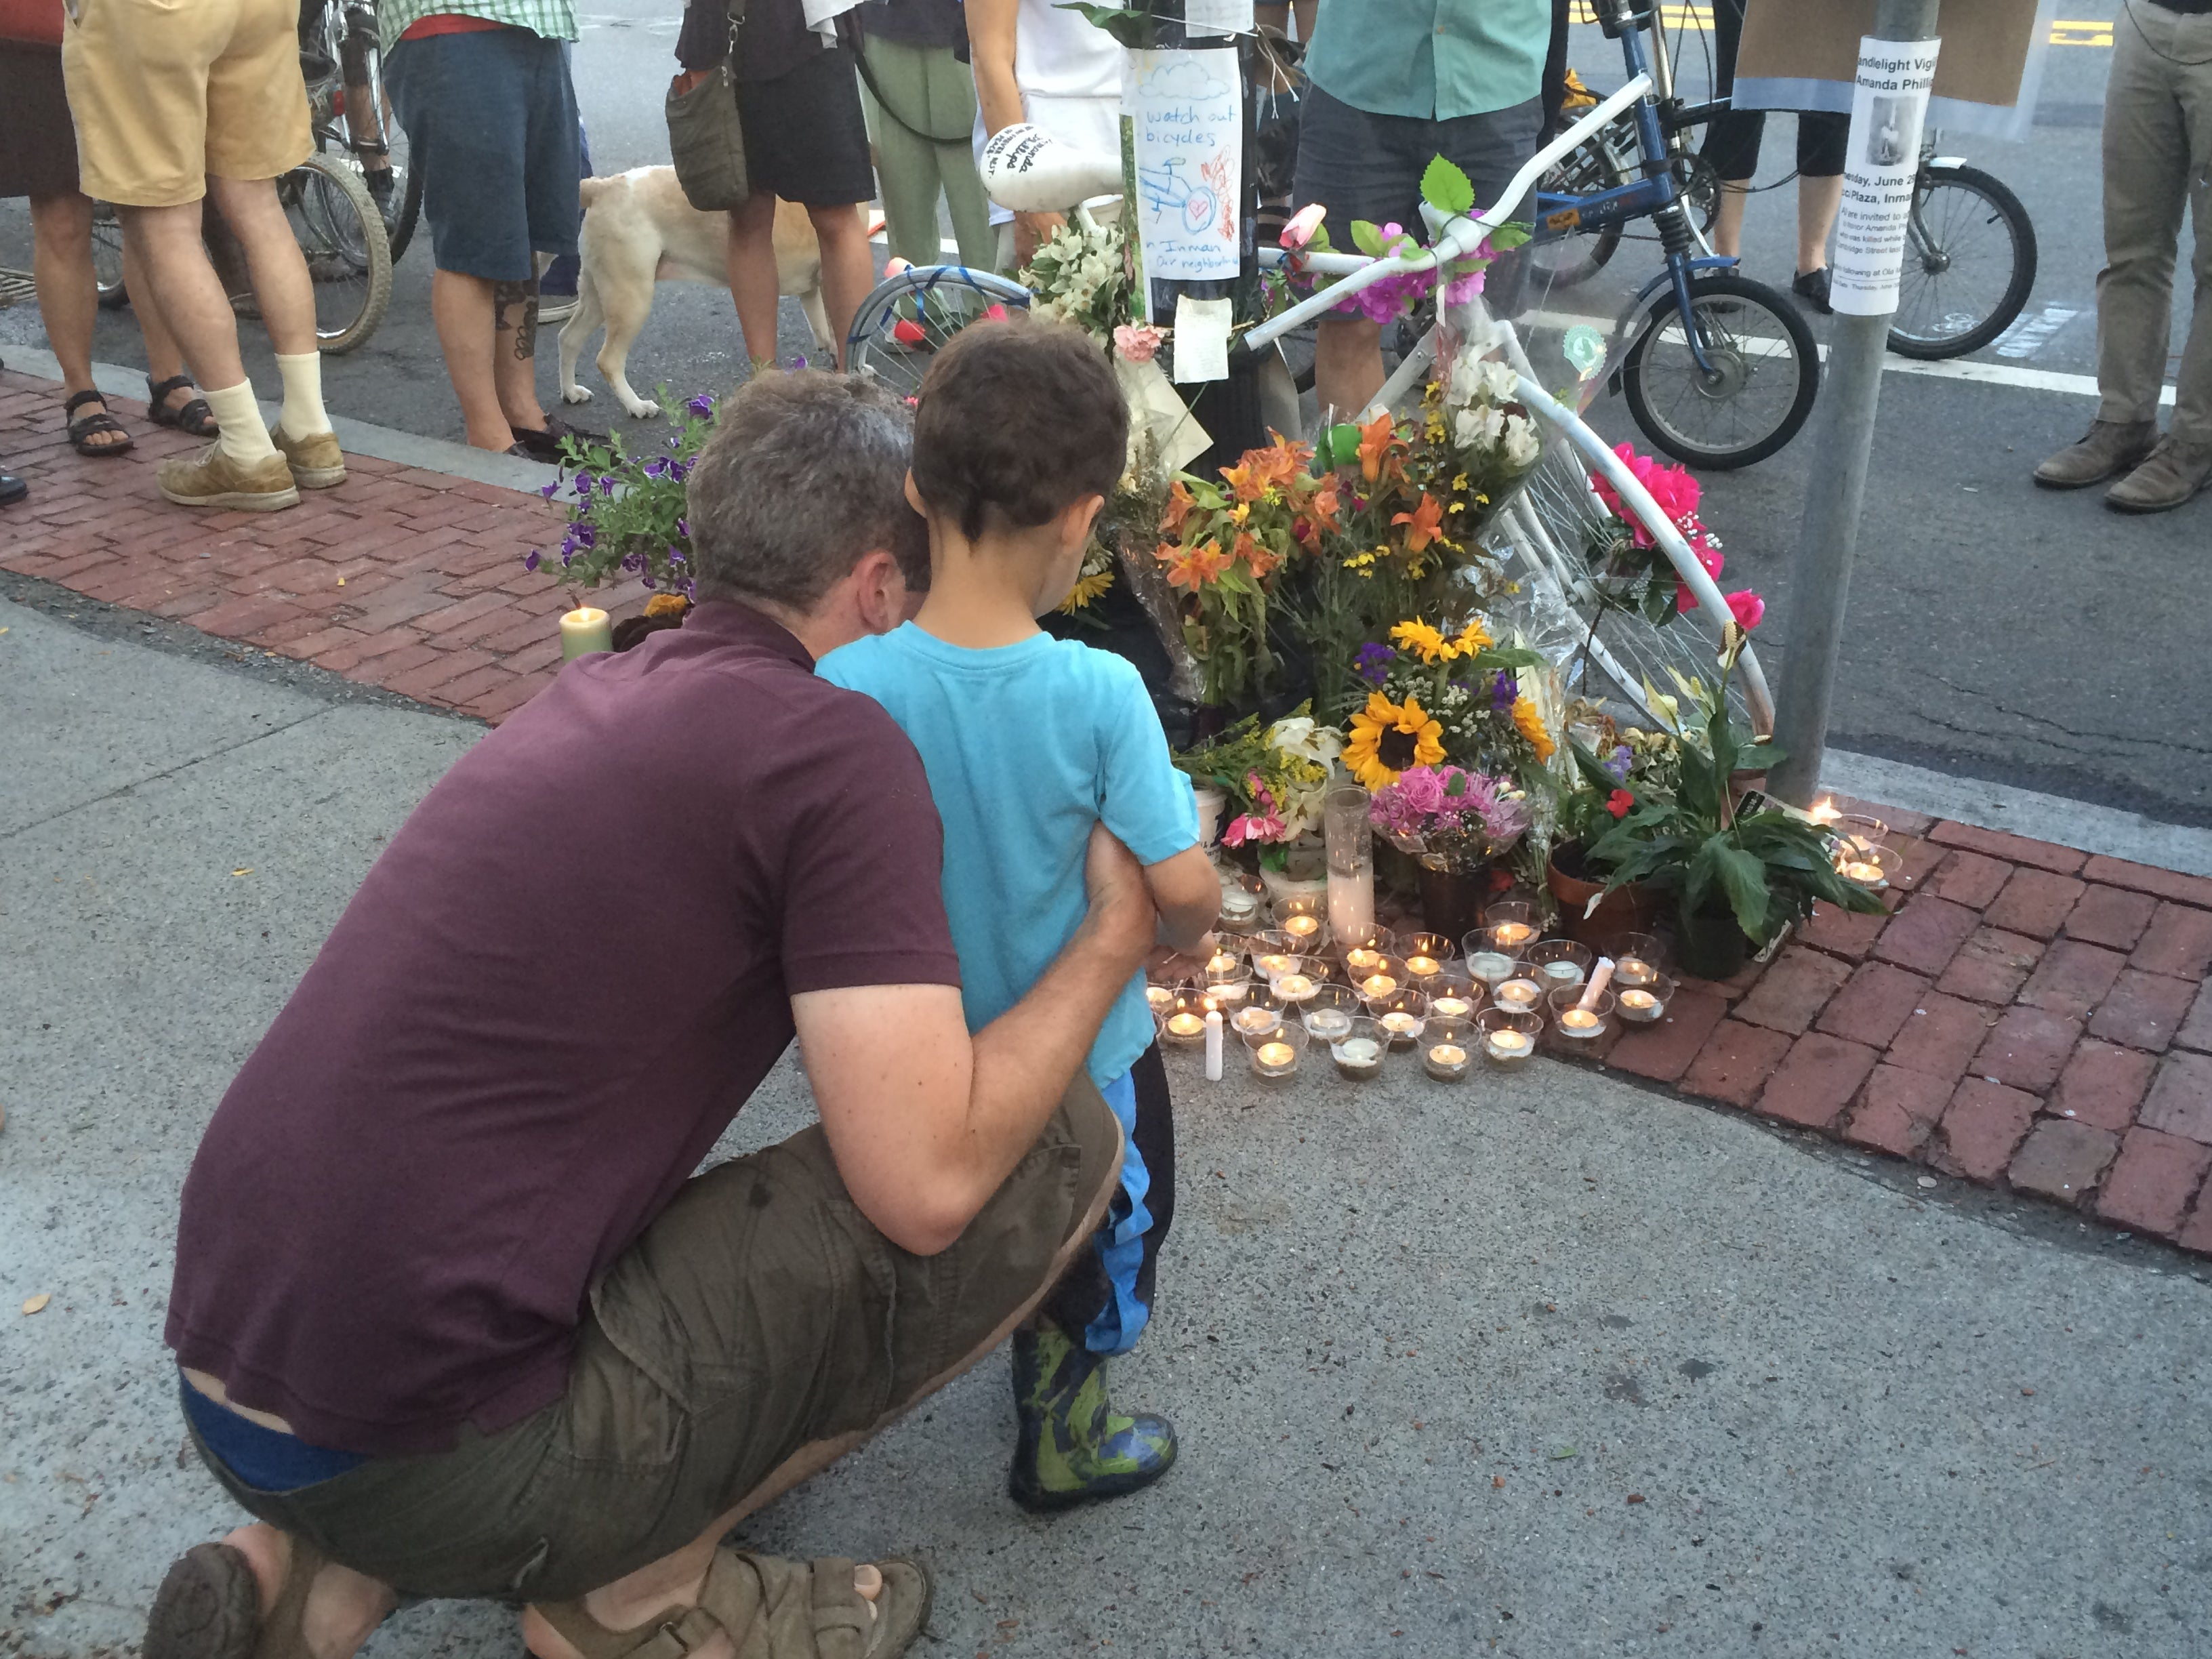 Mourners place a candle in front of the vigil for Amanda Phillips.